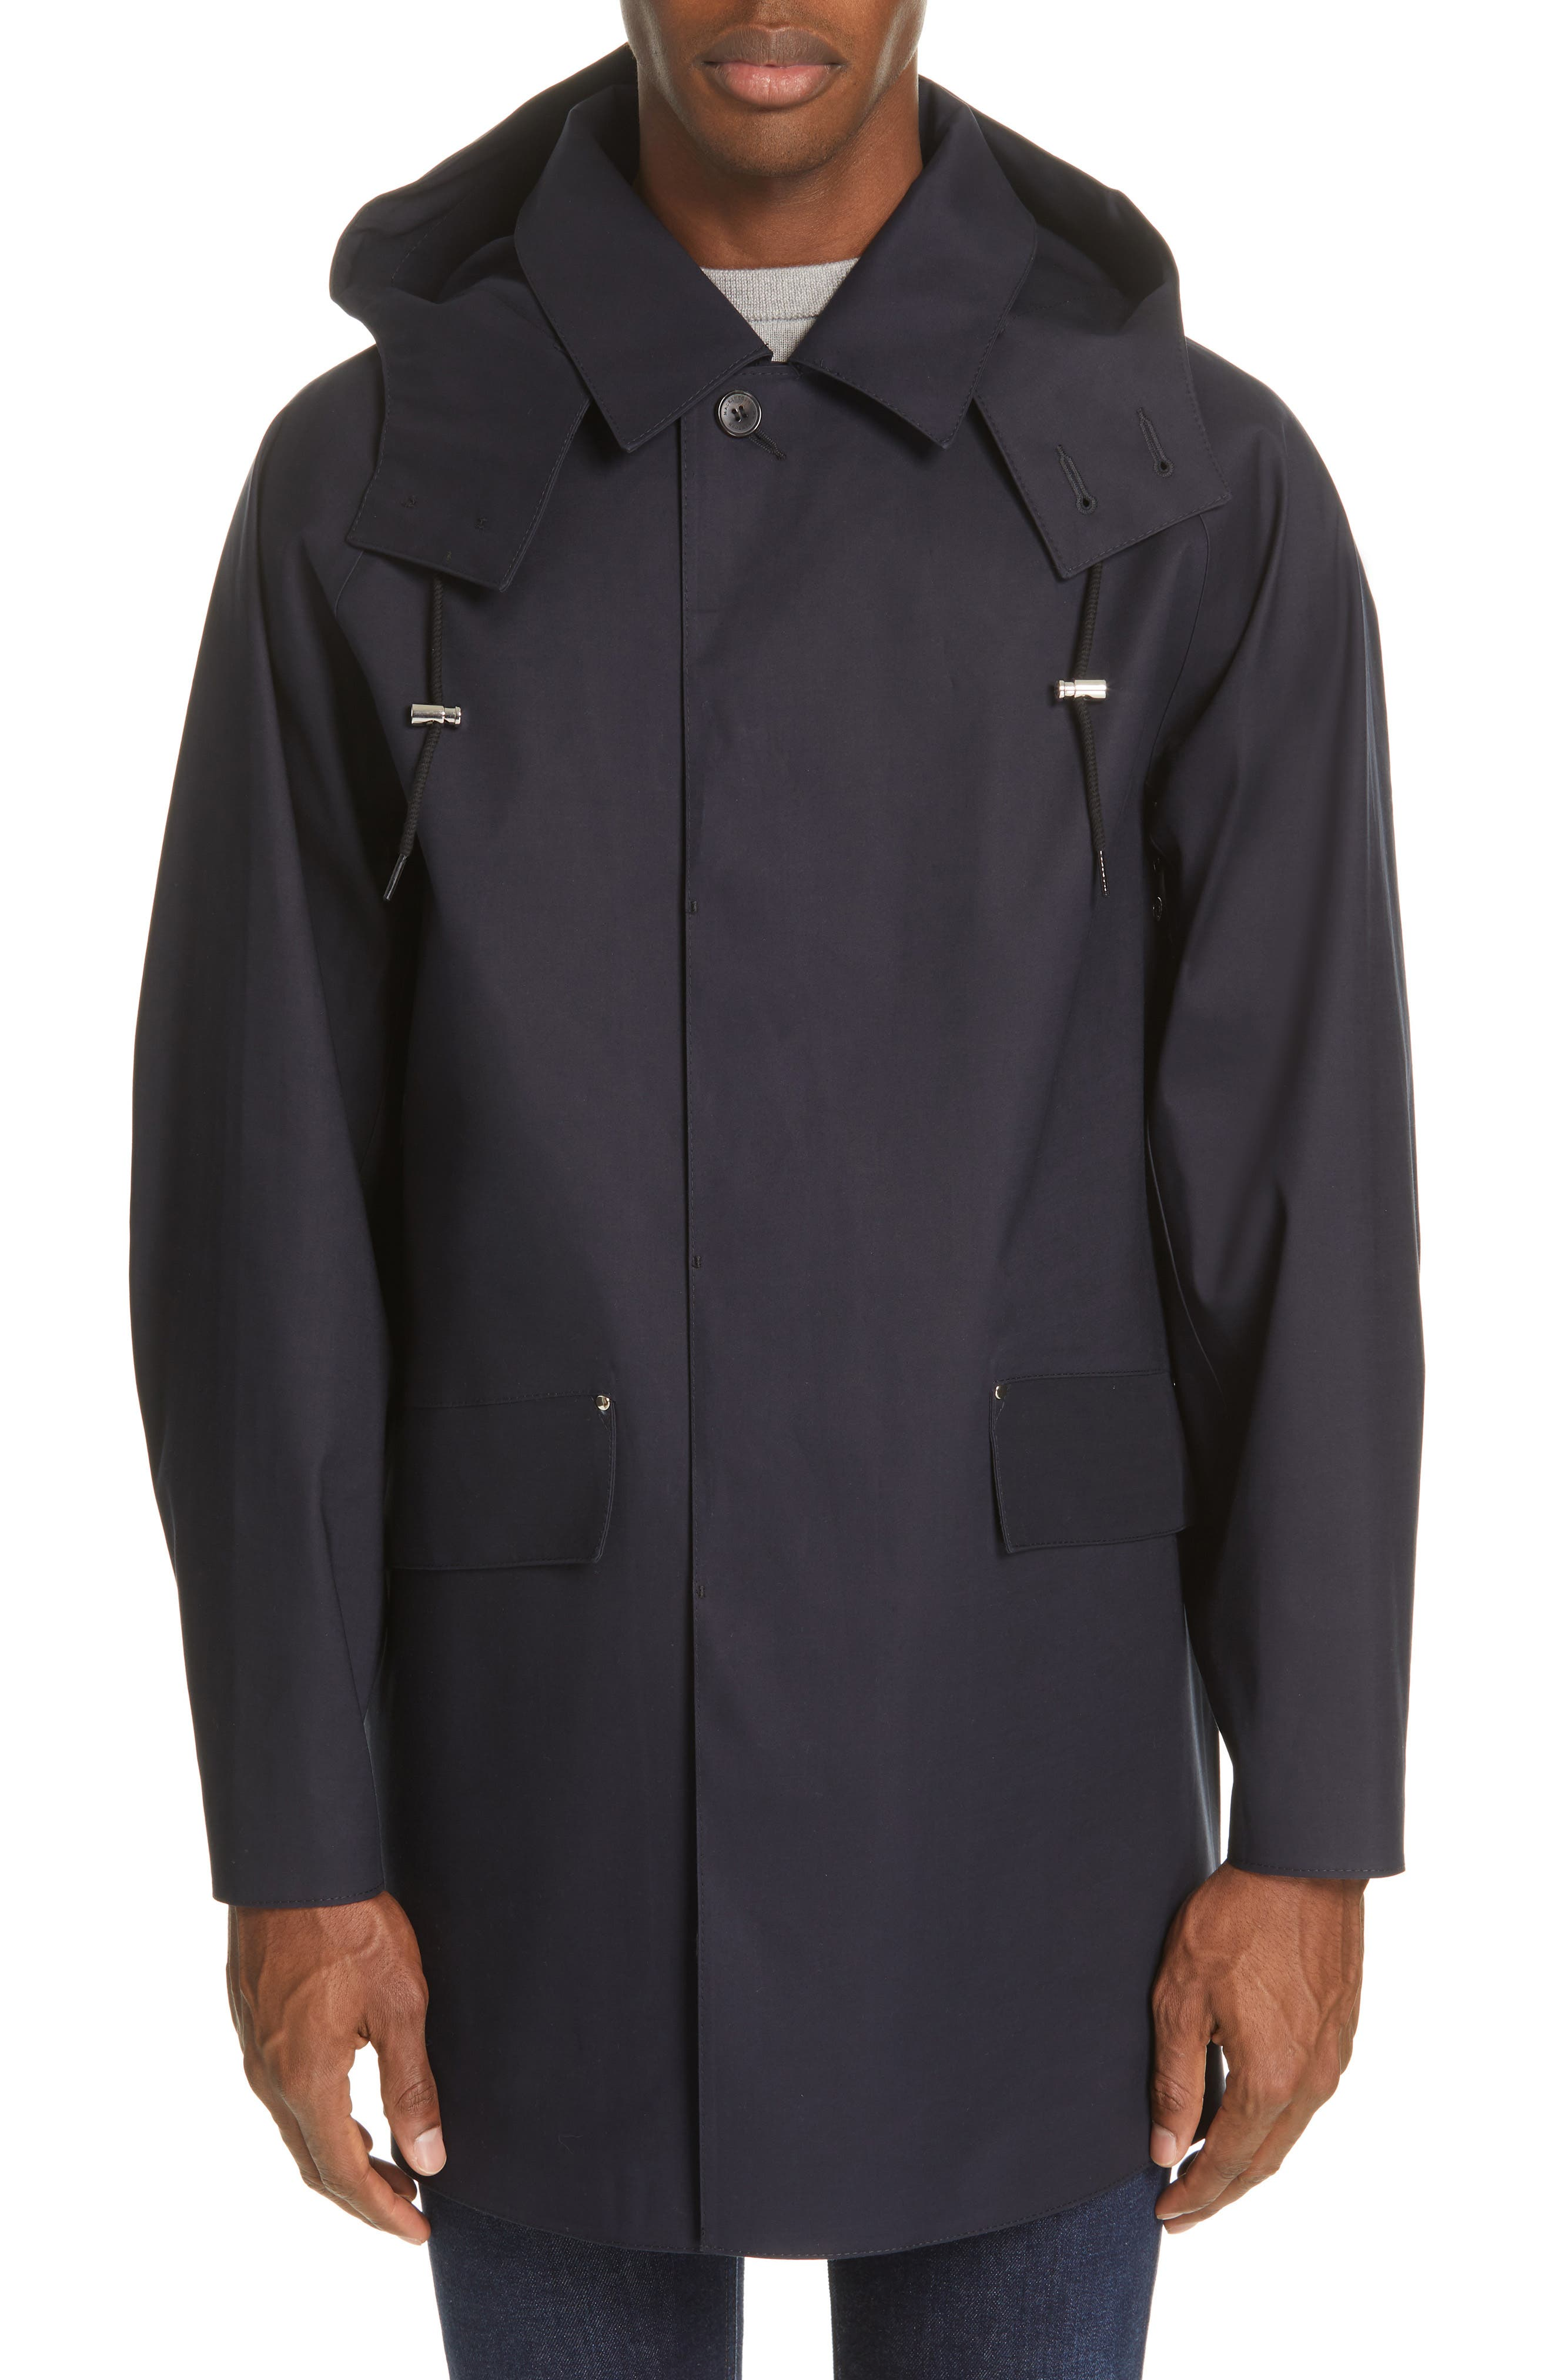 MACKINTOSH, Waterproof Bonded Cotton Raincoat With Removable Hood, Alternate thumbnail 2, color, 410